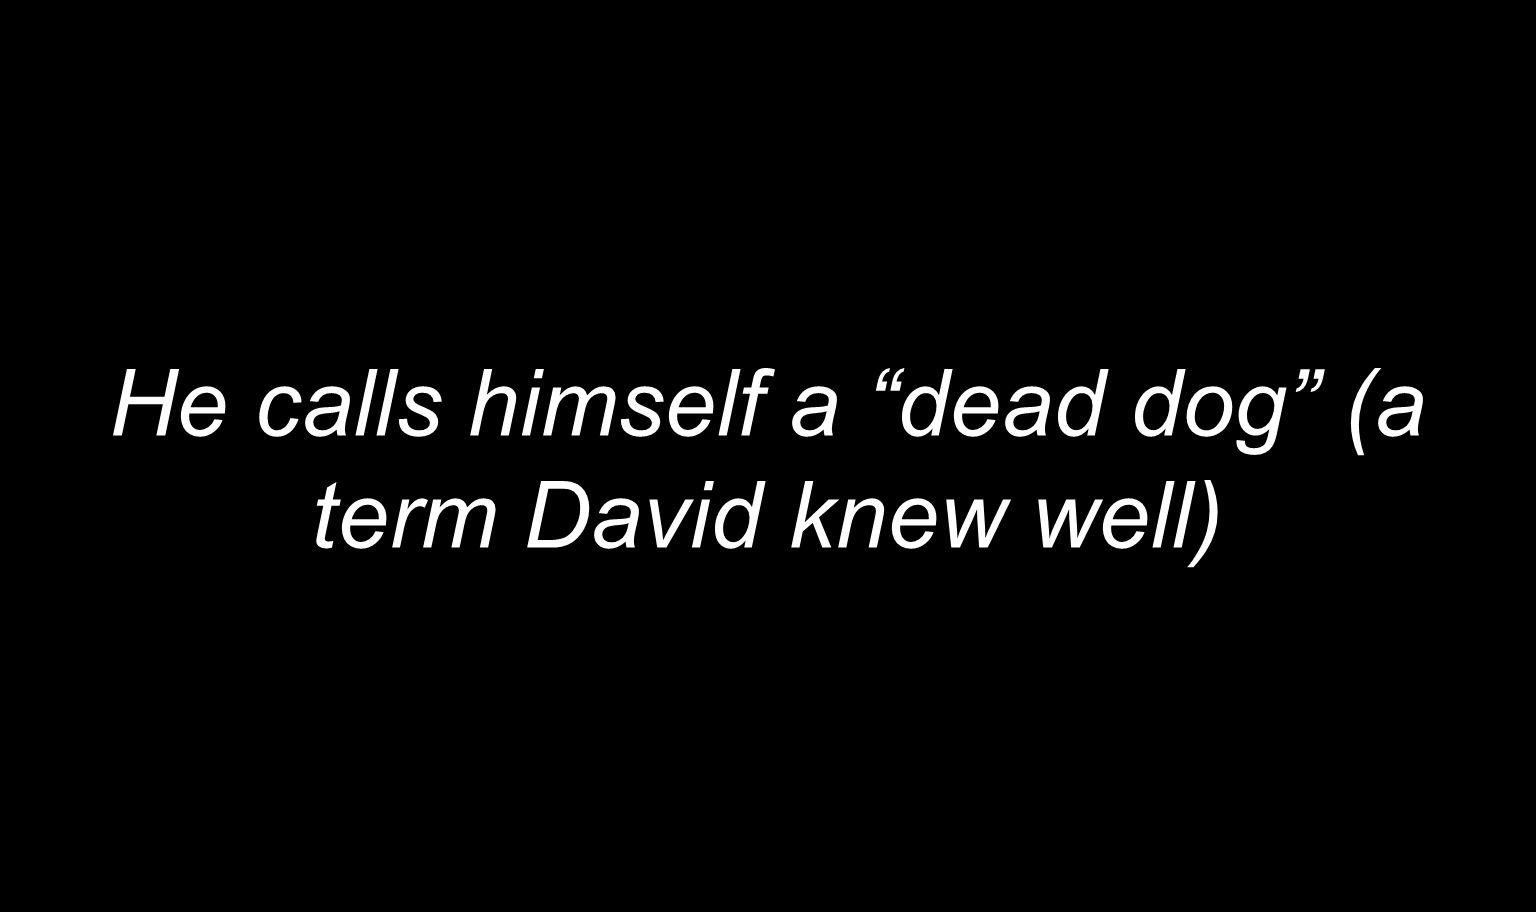 He calls himself a dead dog (a term David knew well)